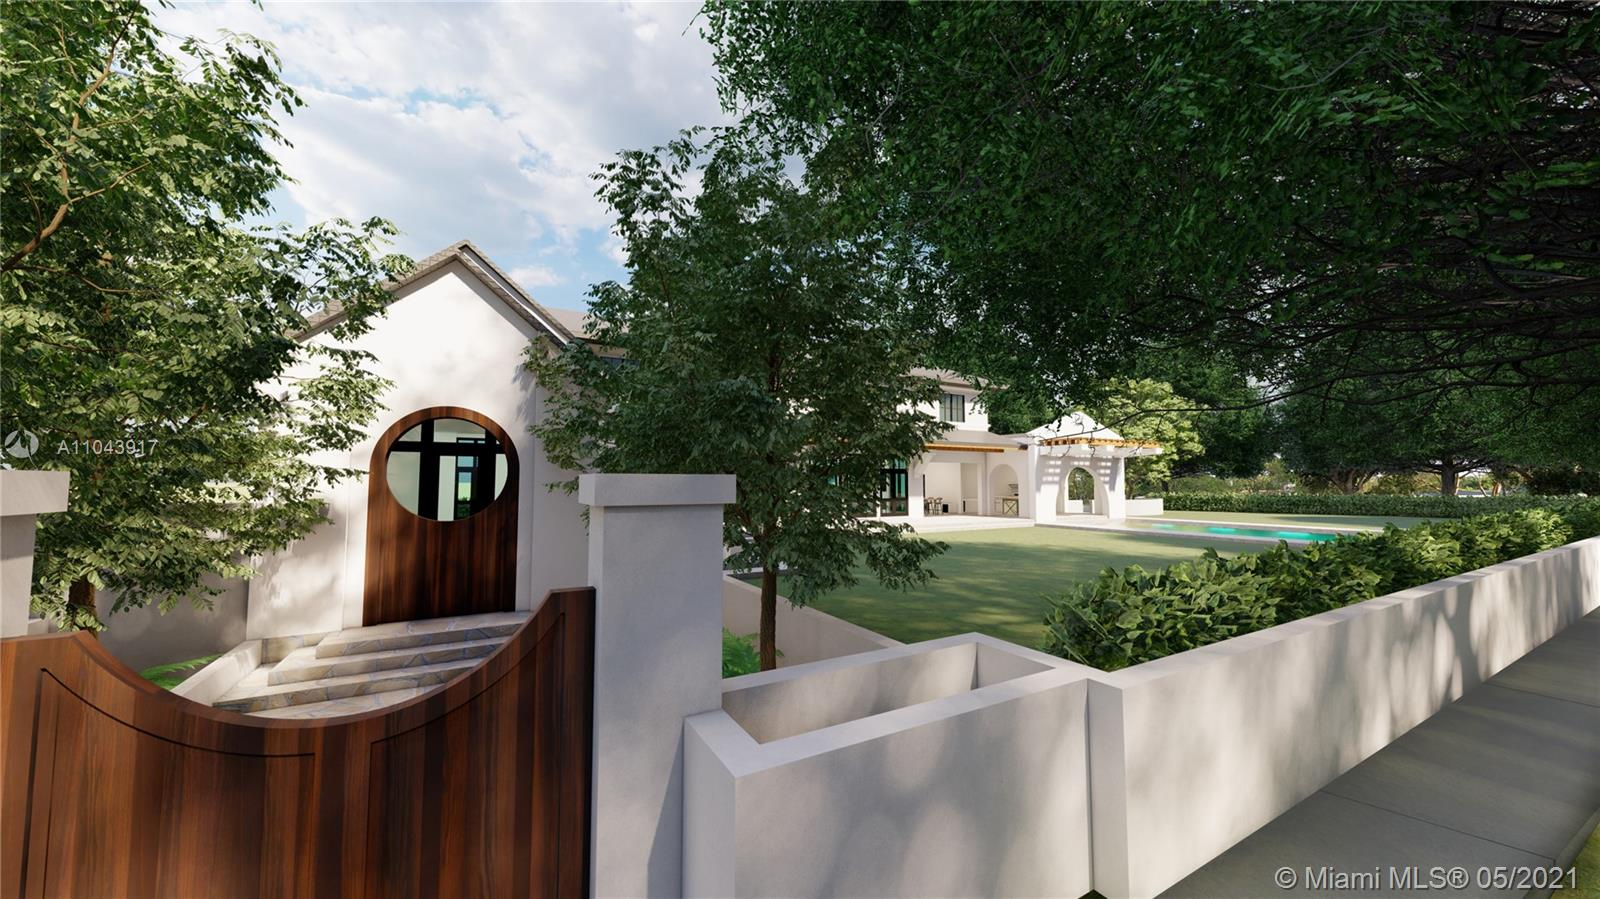 Rare opportunity to build a new construction home on an idyllic 25,000 SF lot in a quiet, tree-canopied South Gables neighborhood. The existing home has 3 BR / 2 BA + a separate 1 BR / 1 BA in-law's quarters with private entrance. (Potential to rent the home during the permitting process).  Mature oaks, black olive, palms, lychee, avocado, sapodilla, carambola, mango, frangipani and other trees surround the perimeter of this lush, park-like property. Complete set of architectural plans by world renowned architect, Jorge L. Hernandez are available. Close to Miami's most prestigious schools and to shopping & dining in downtown Coral Gables, South Miami and Coconut Grove.